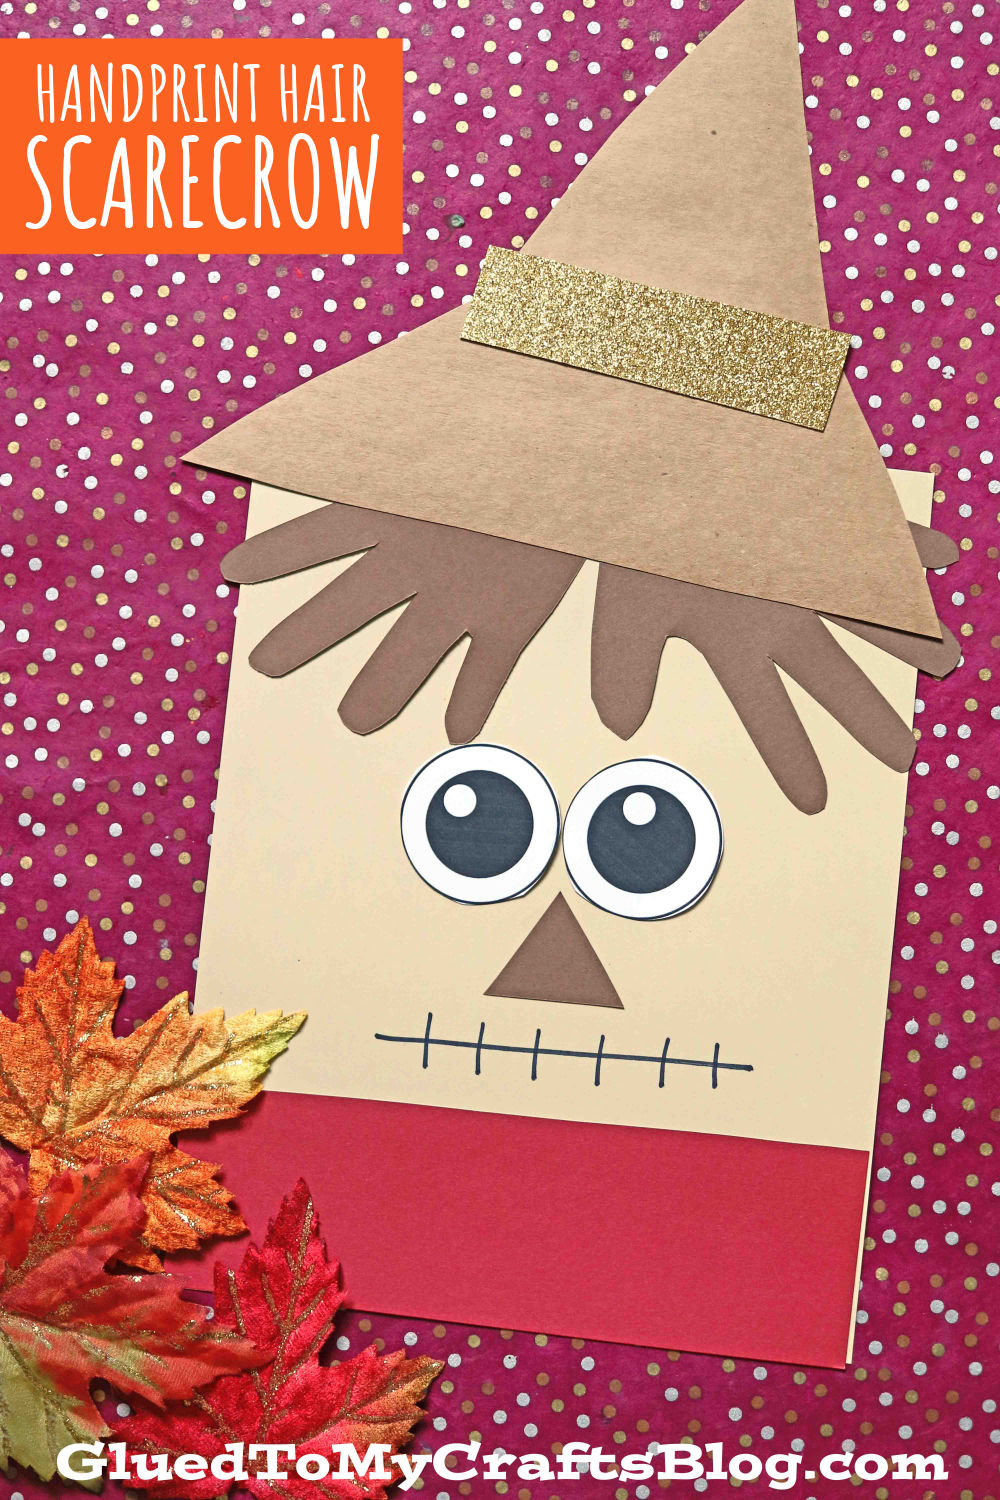 Paper Handprint Scarecrow Hair Craft For Kids To Make This Fall!